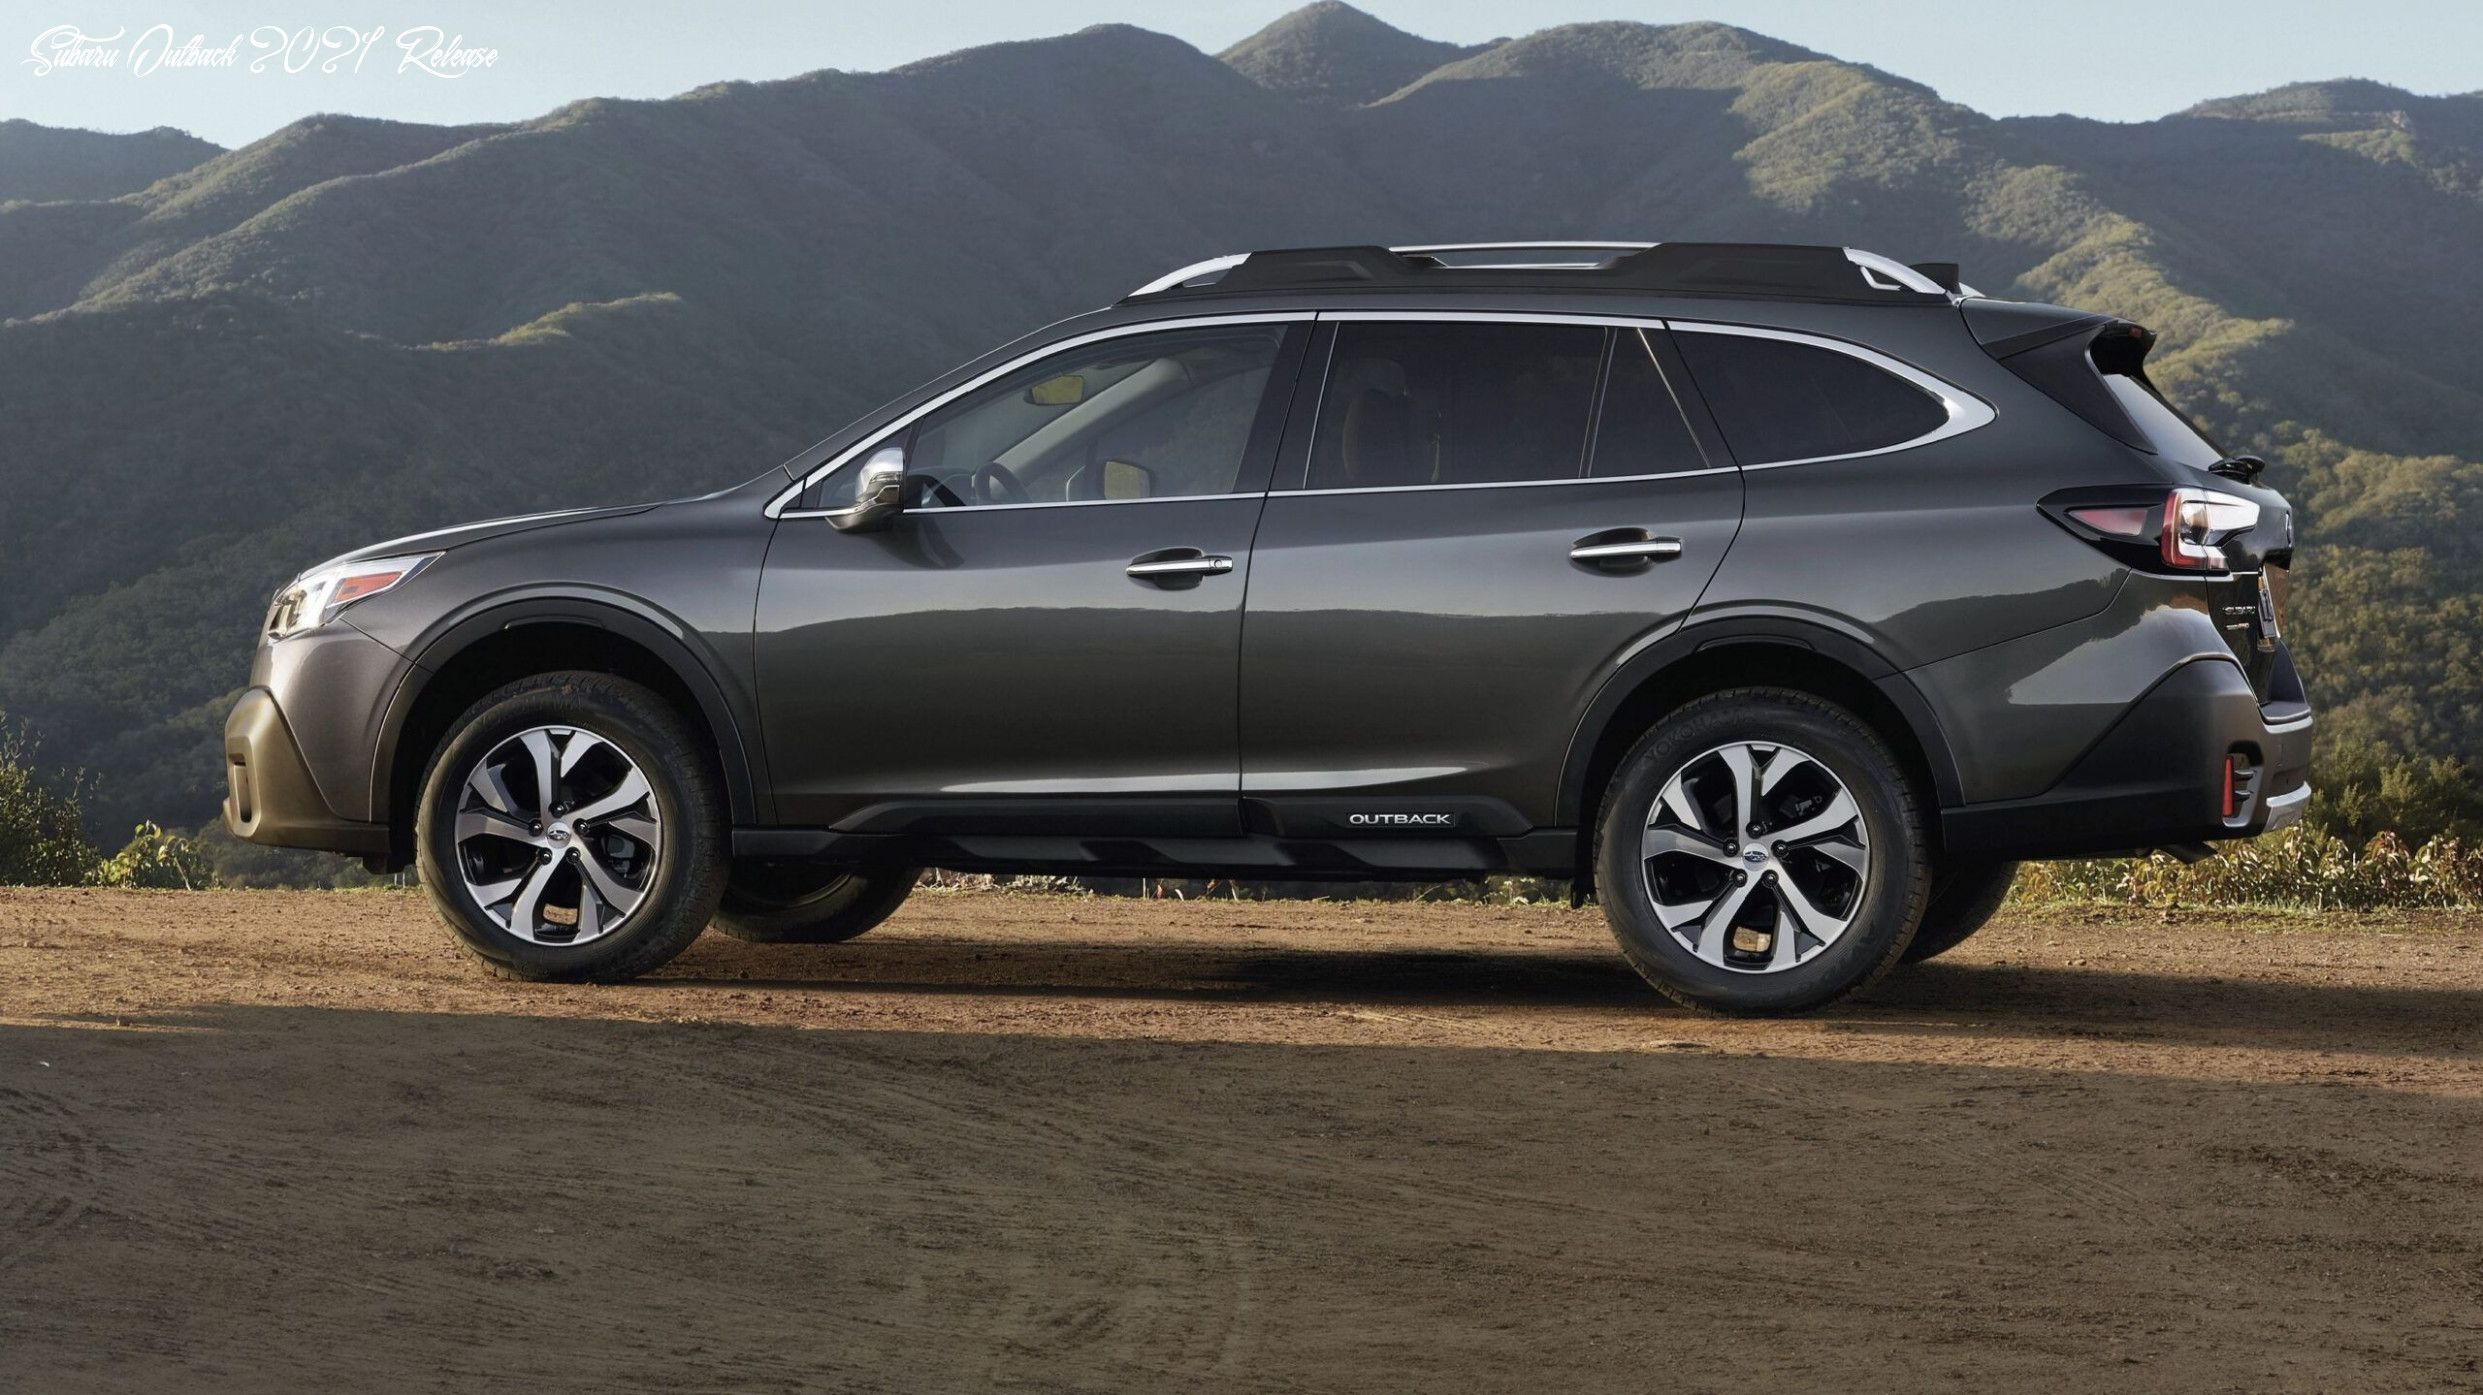 Subaru Outback 2021 Release Price Design And Review In 2020 Subaru Outback Subaru Outback